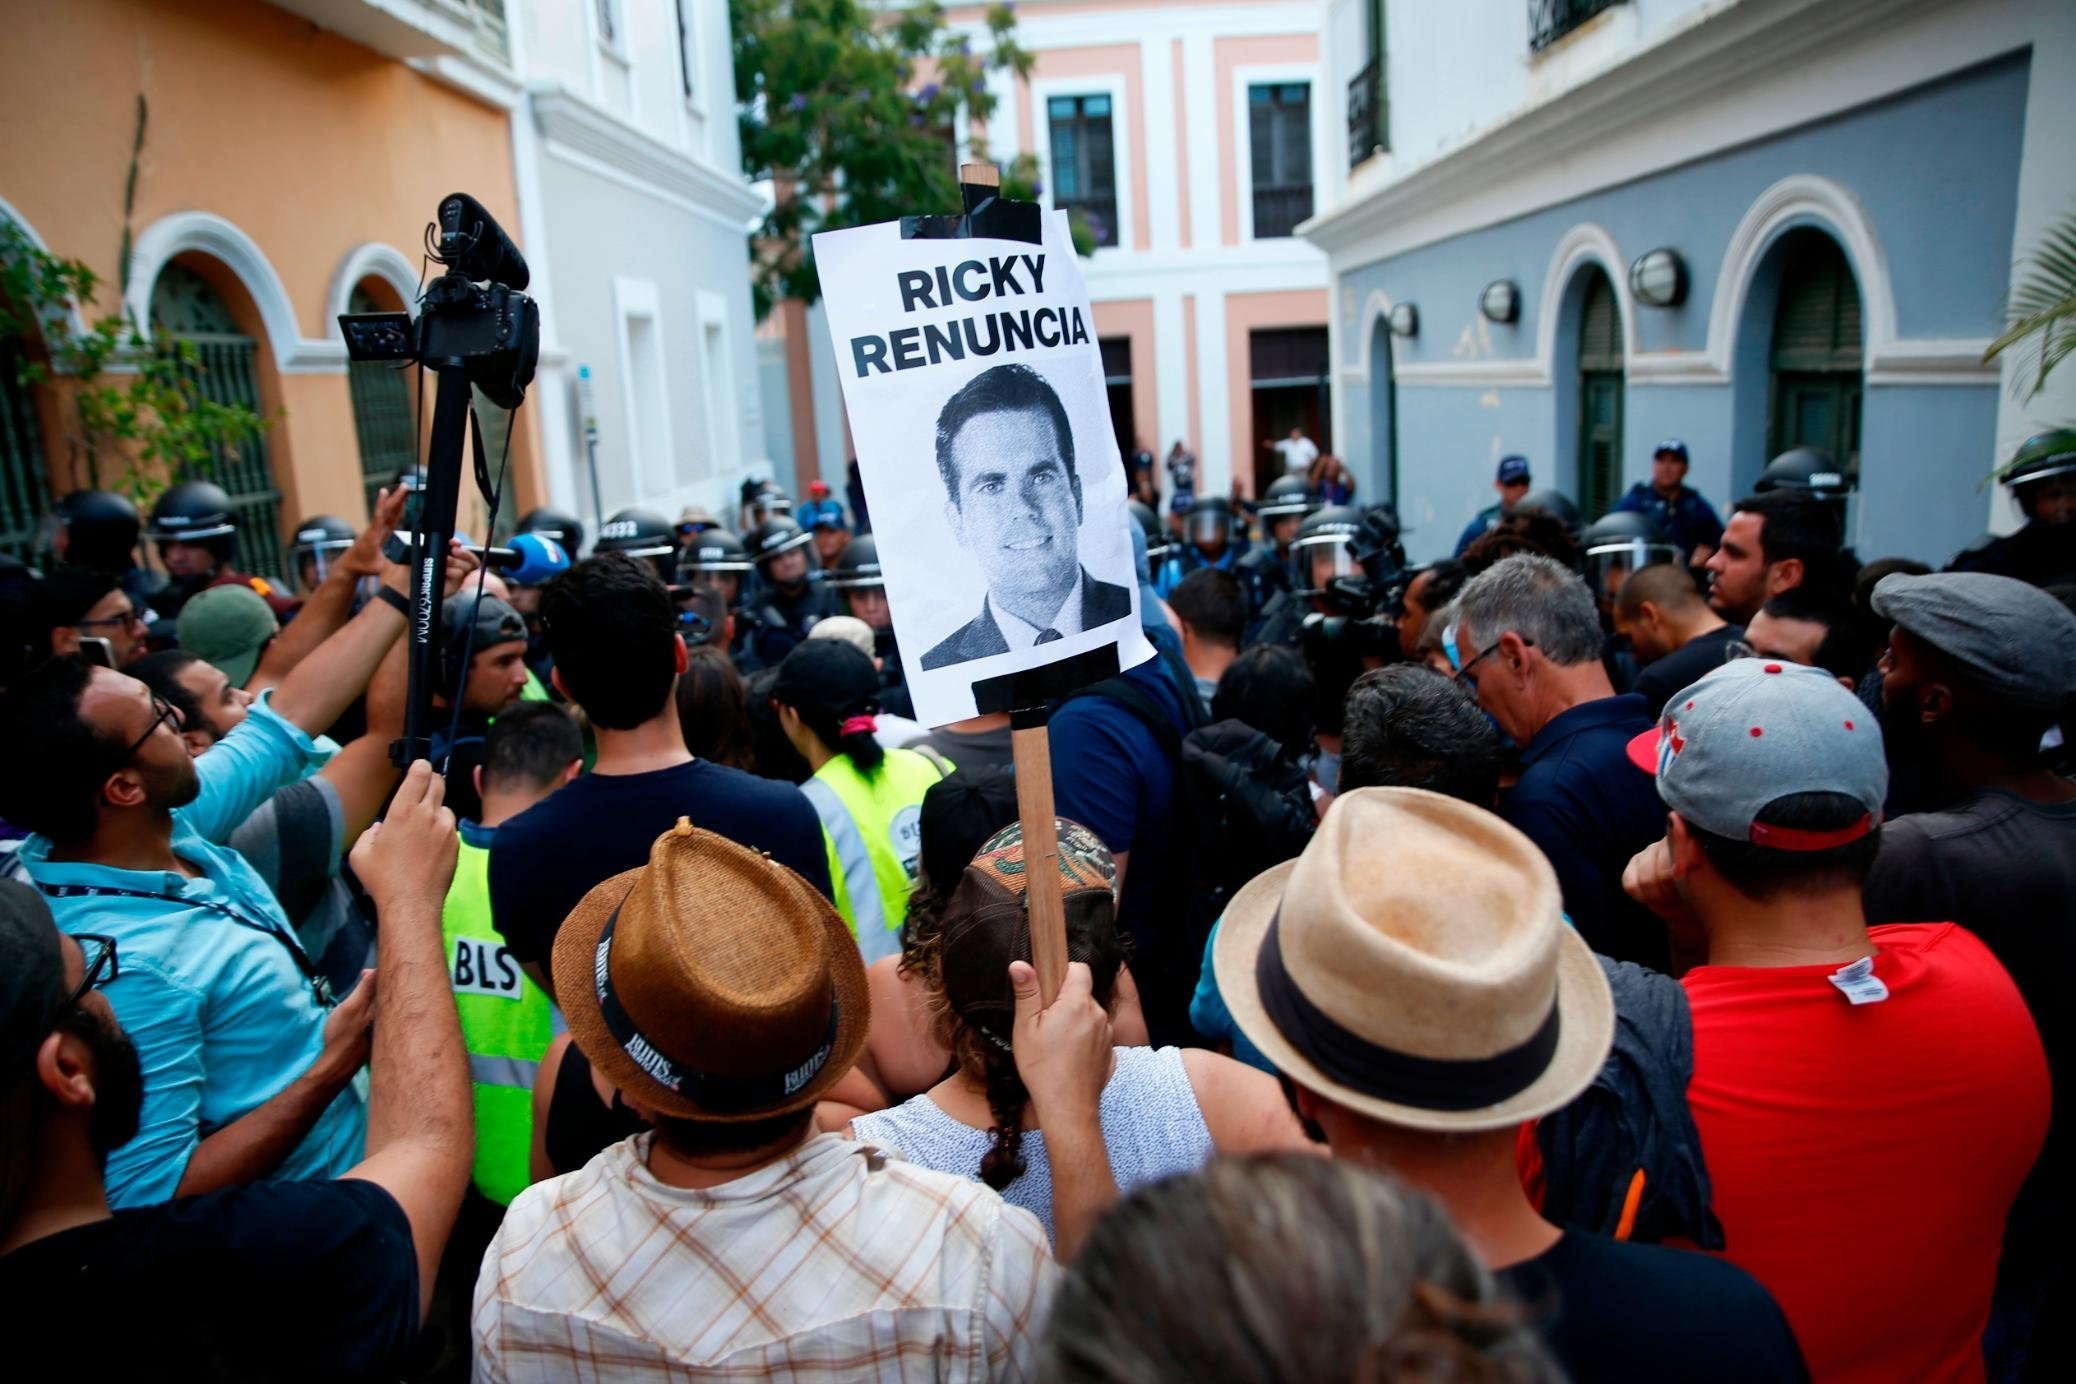 Puerto Rico braces for Friday protests amid calls for governor's ouster